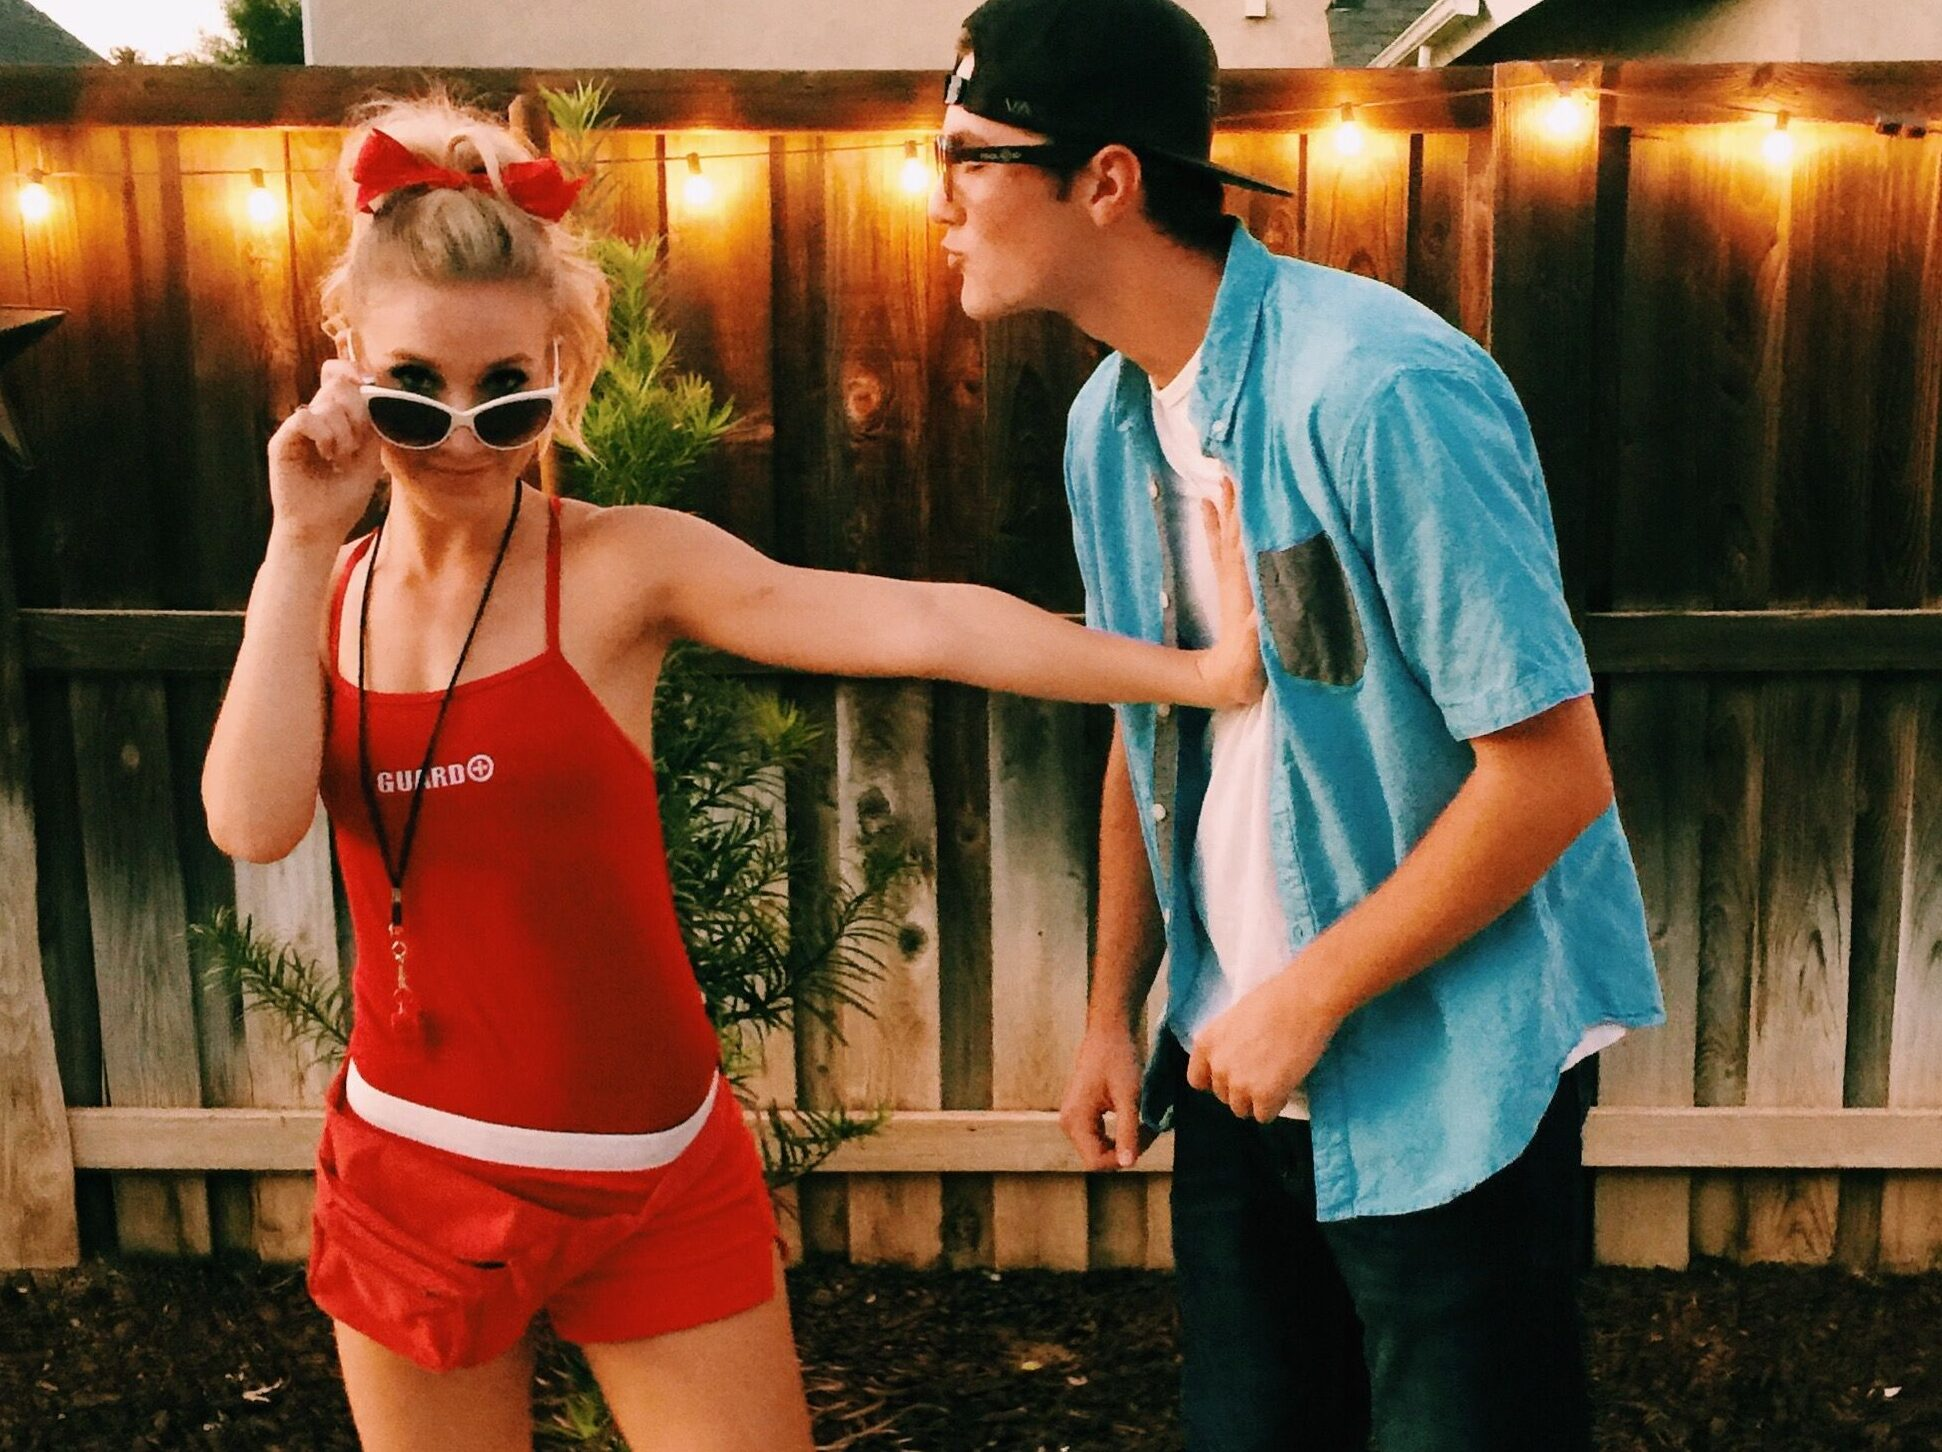 Sandlot costume for Halloween 2020. | The Dating Divas